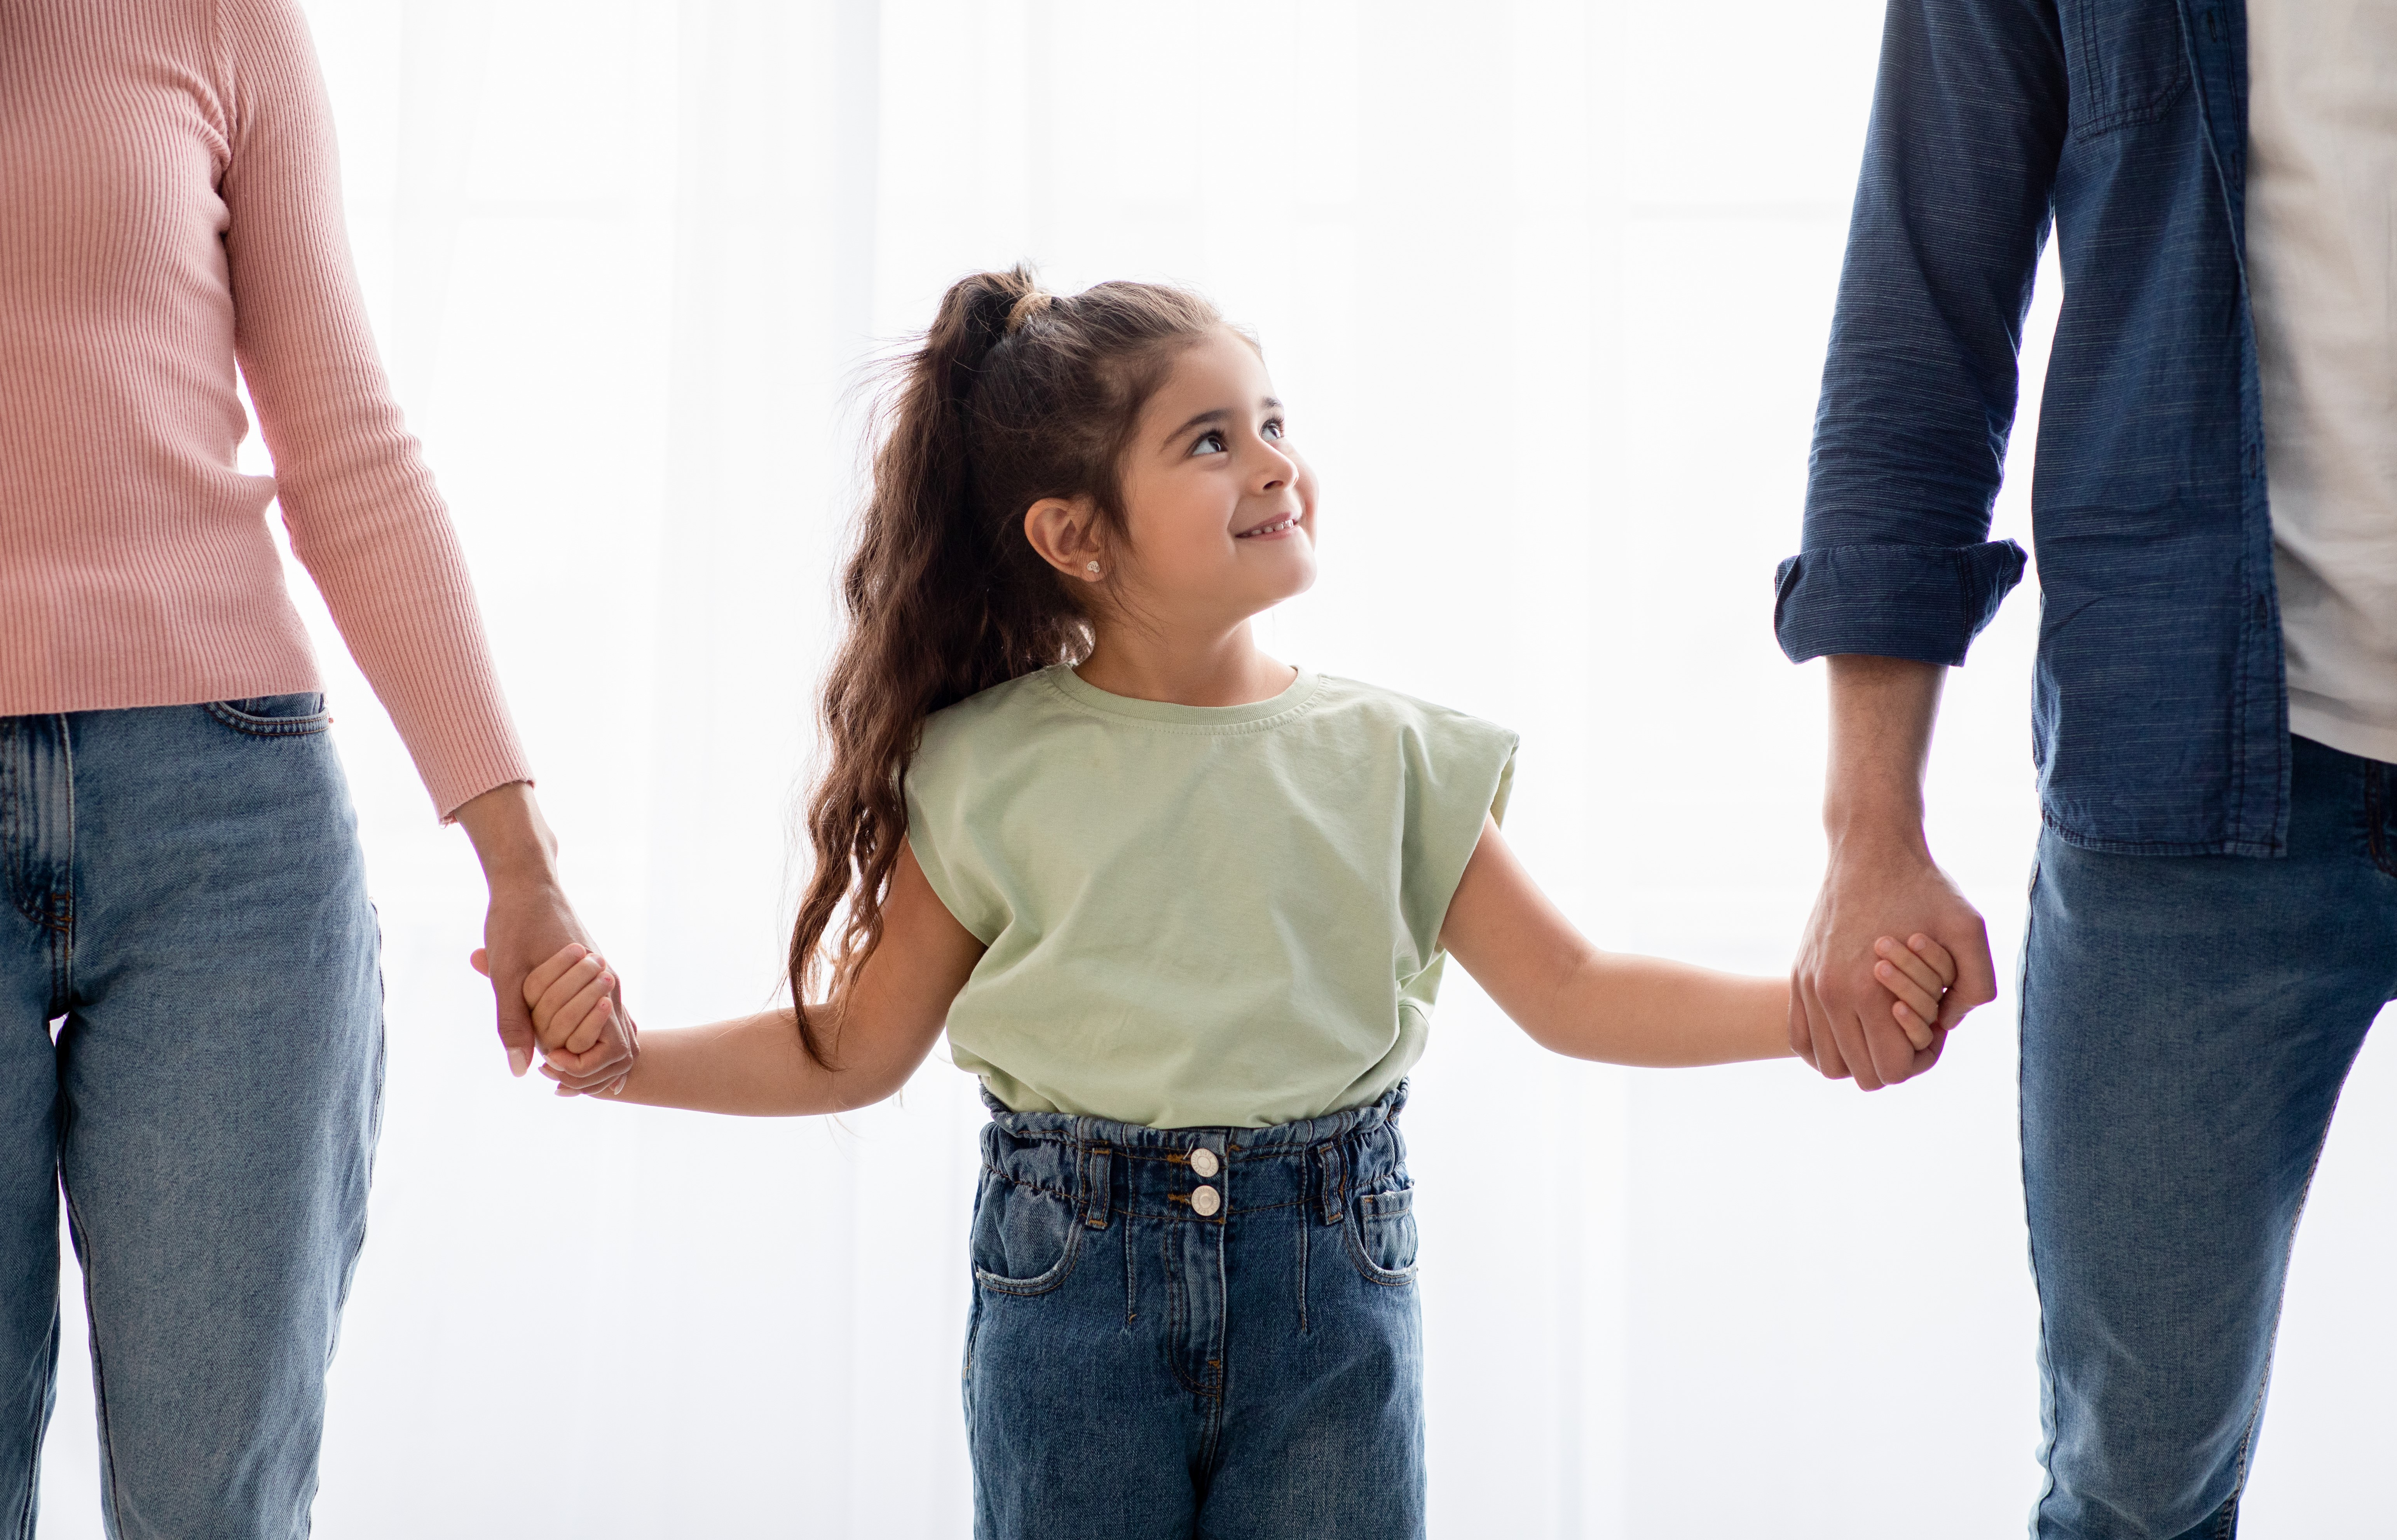 """It's a big question, but don't be afraid to ask it. At one point or another, everyone on this journey has asked, """"How does adoption work?"""""""